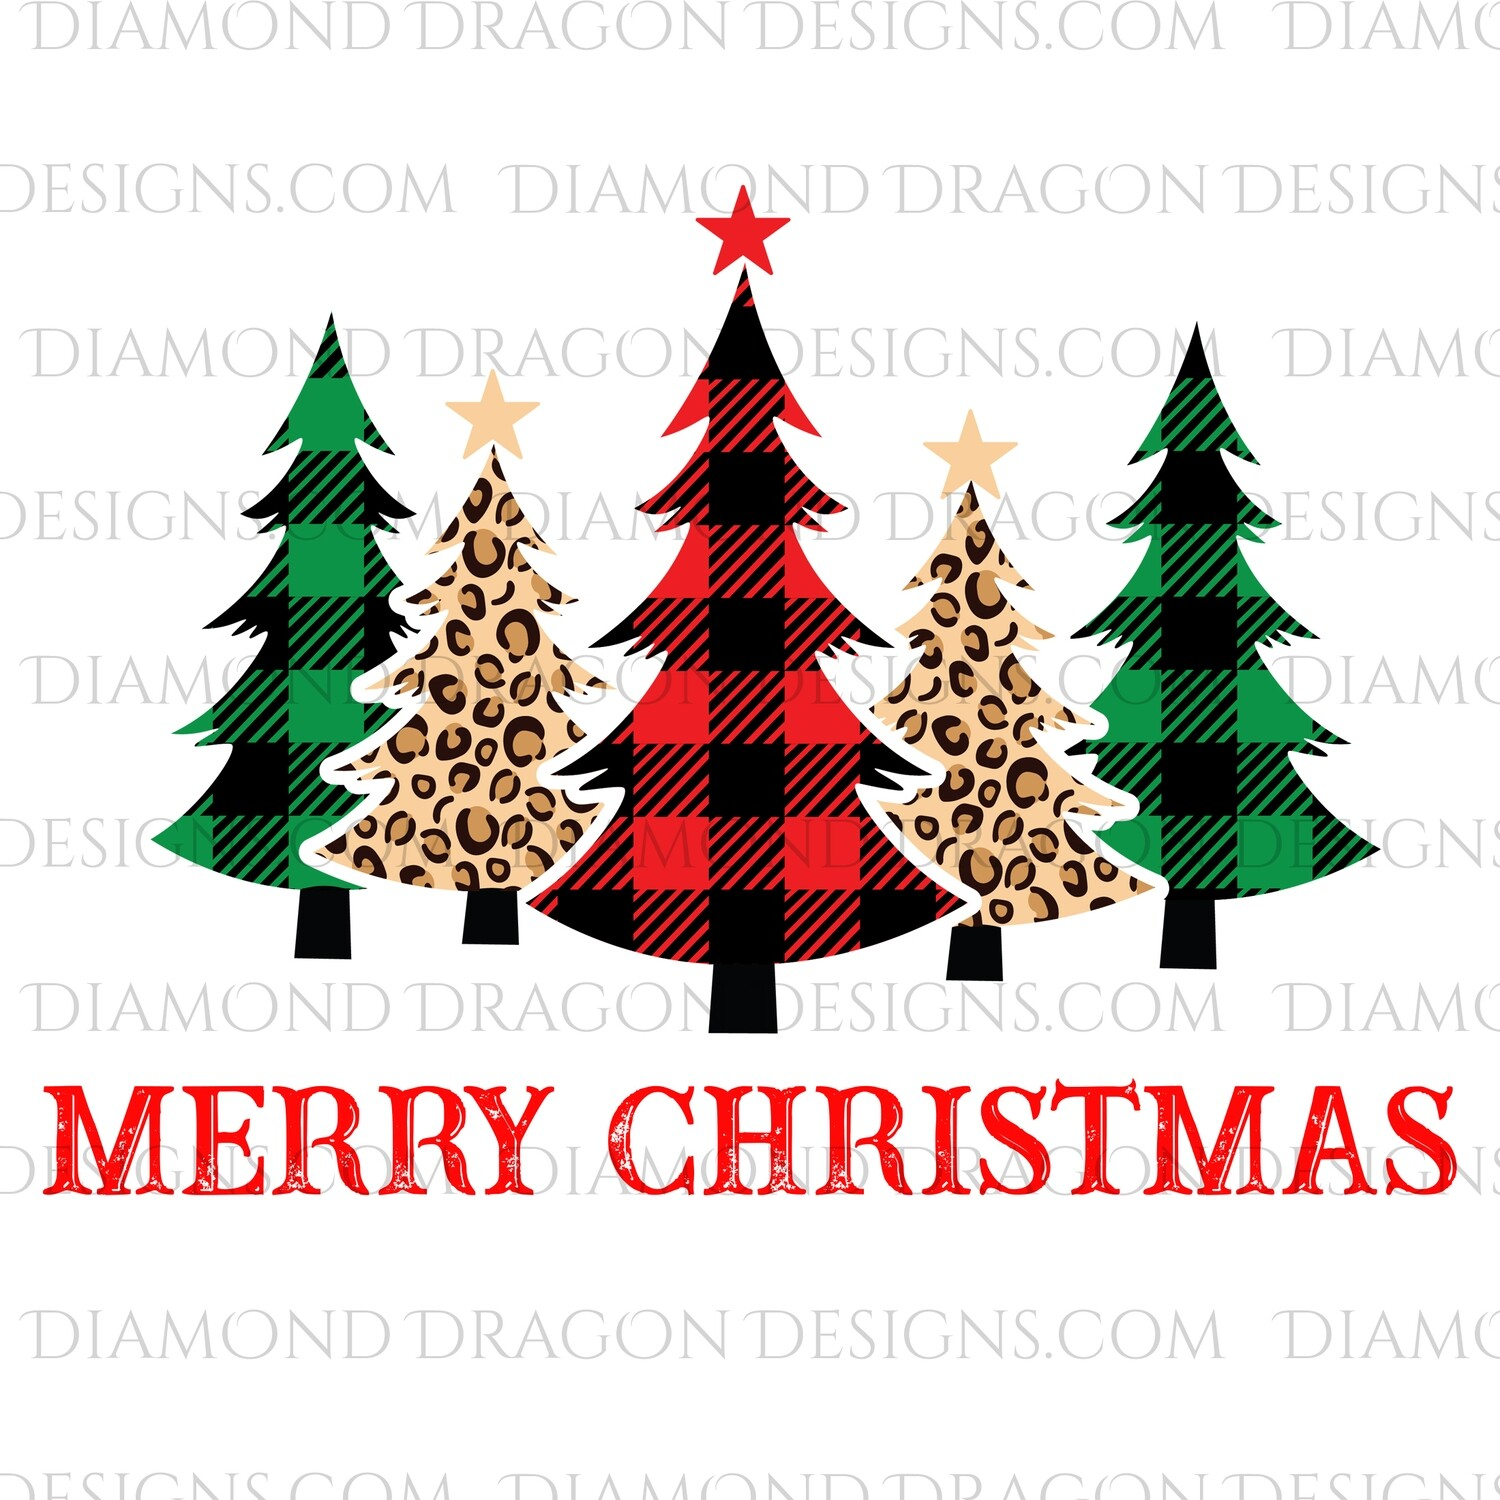 Christmas -  Plaid, Leopard Christmas Trees, Merry Christmas, Digital Image